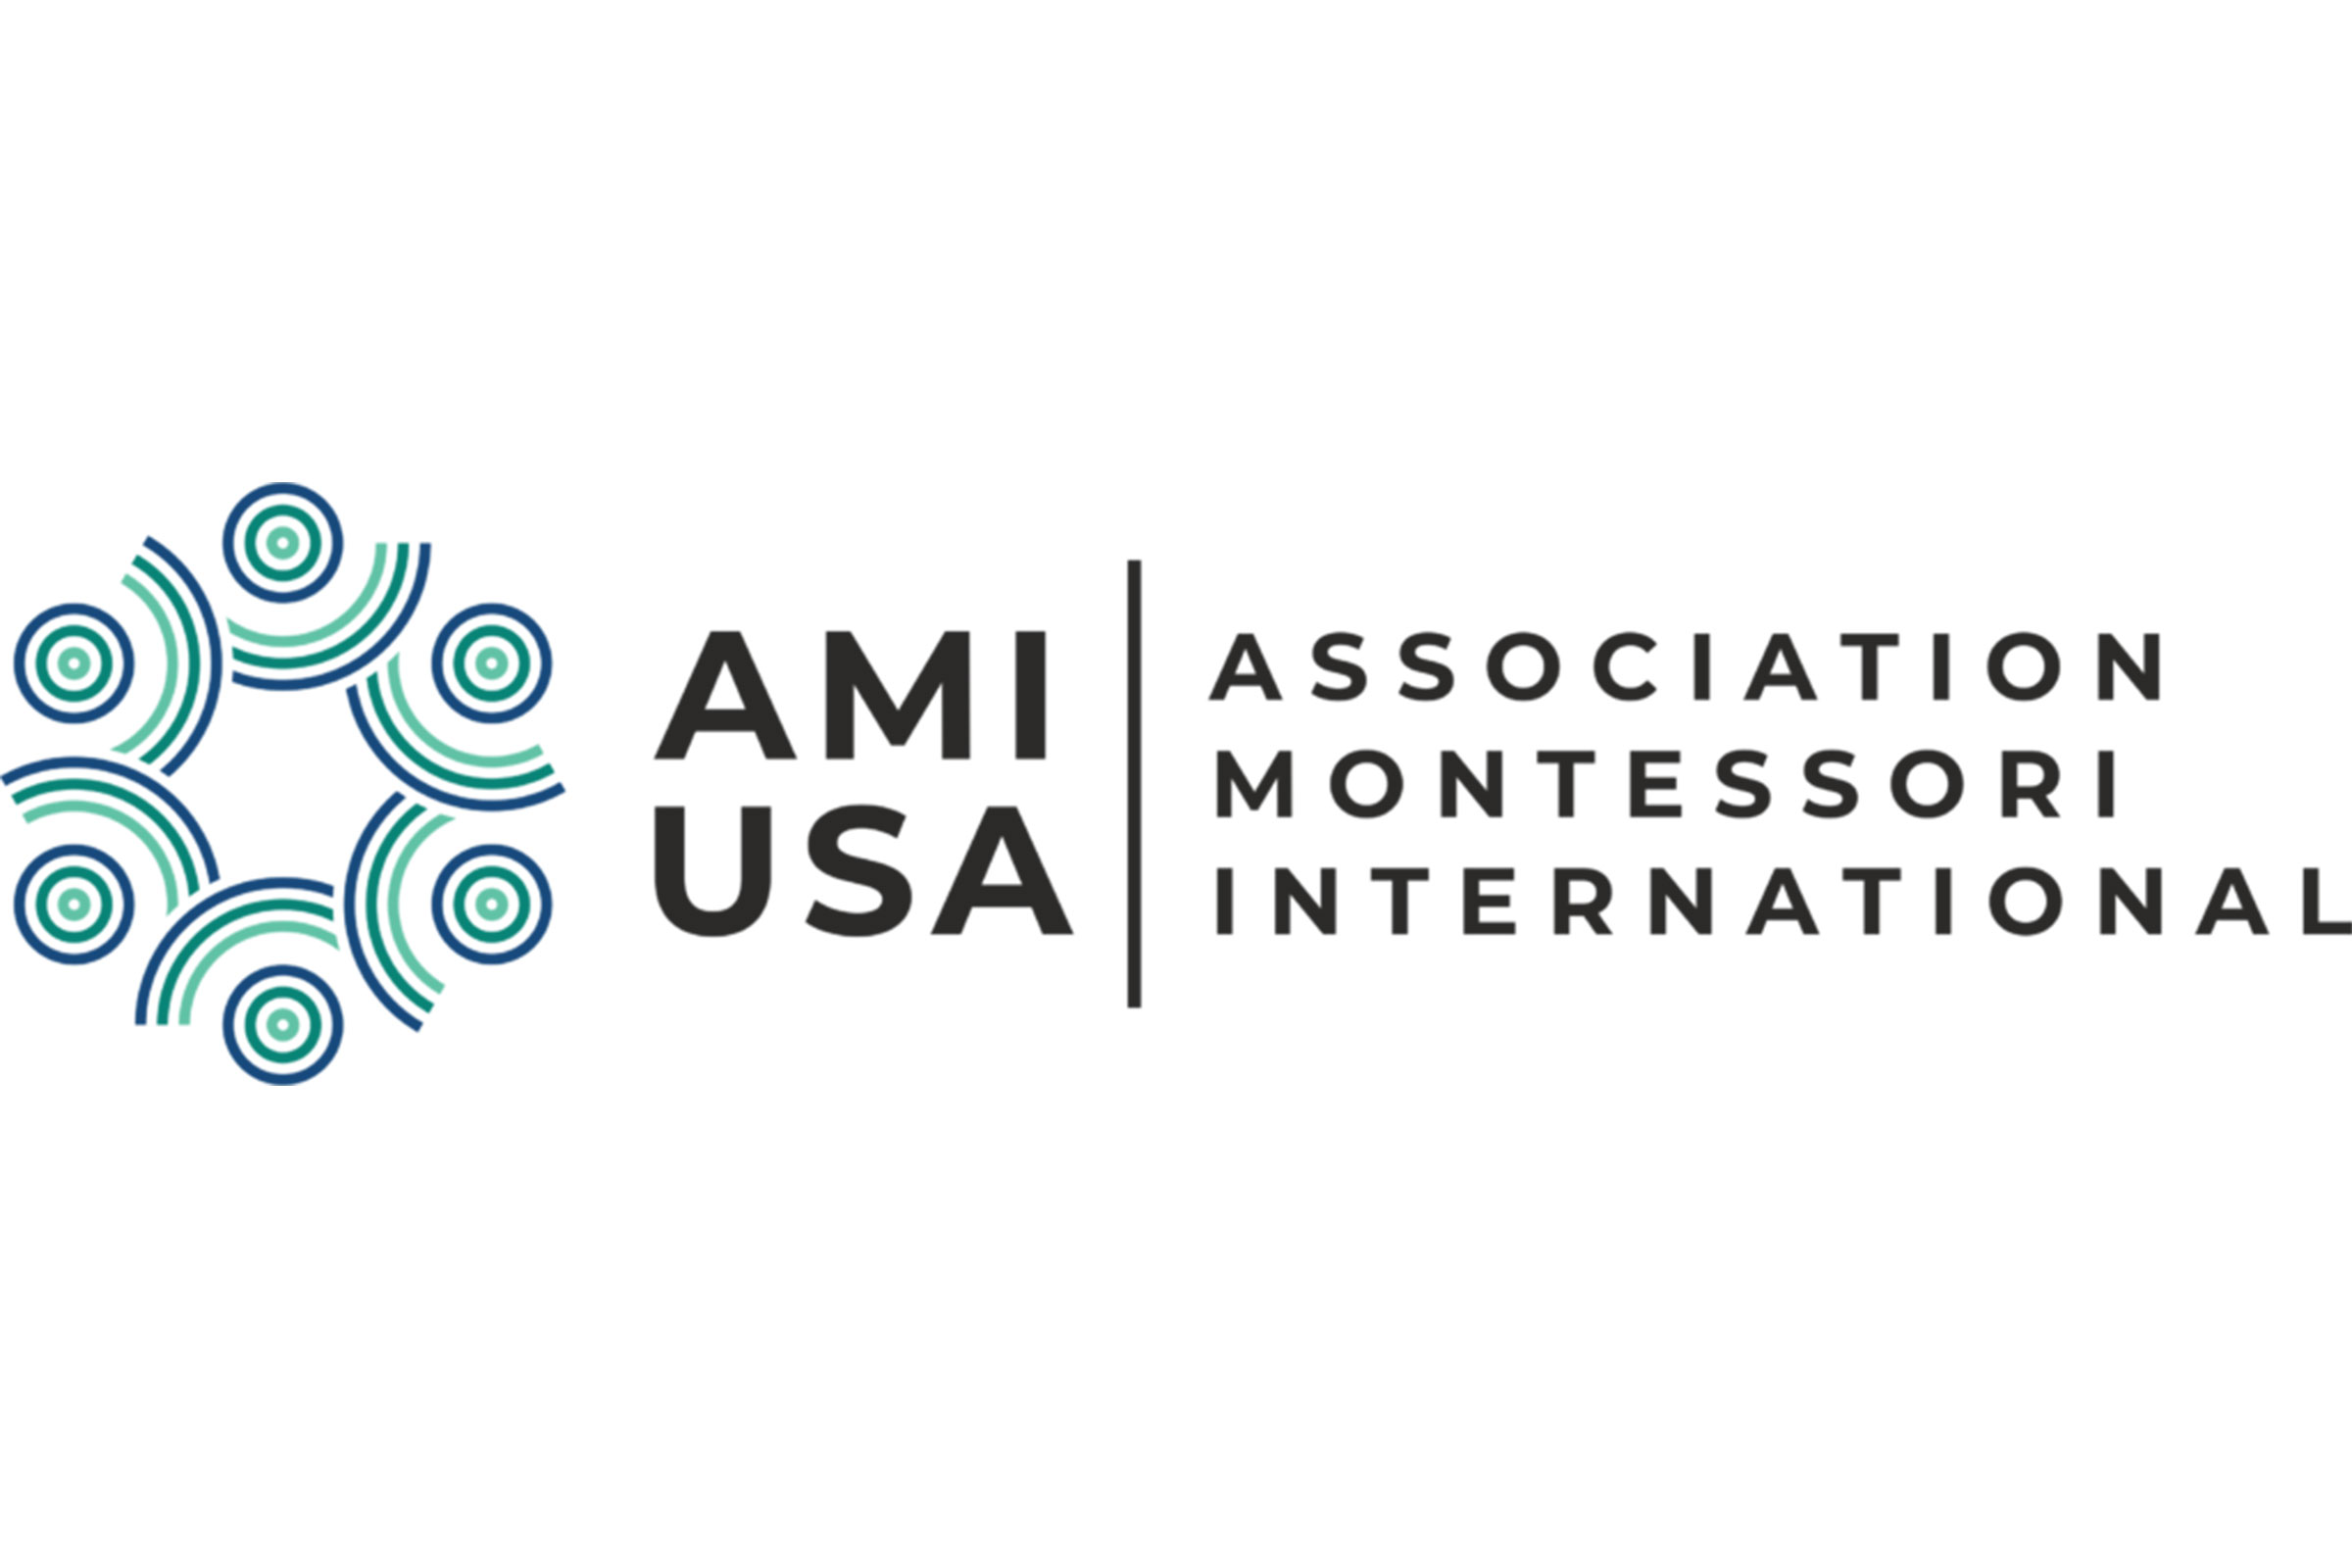 Association Montessori International / USA logo